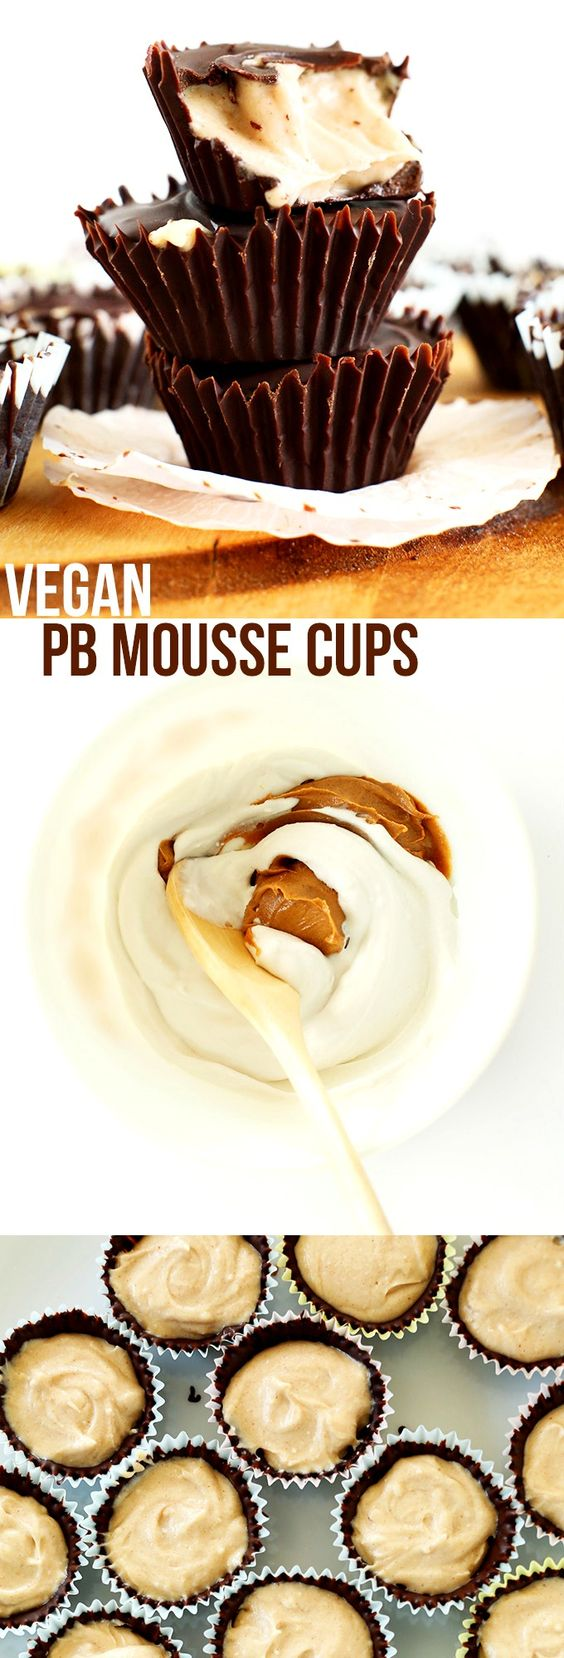 ... Butter MOUSSE Cups! Crunchy chocolate shell, creamy PB mousse center